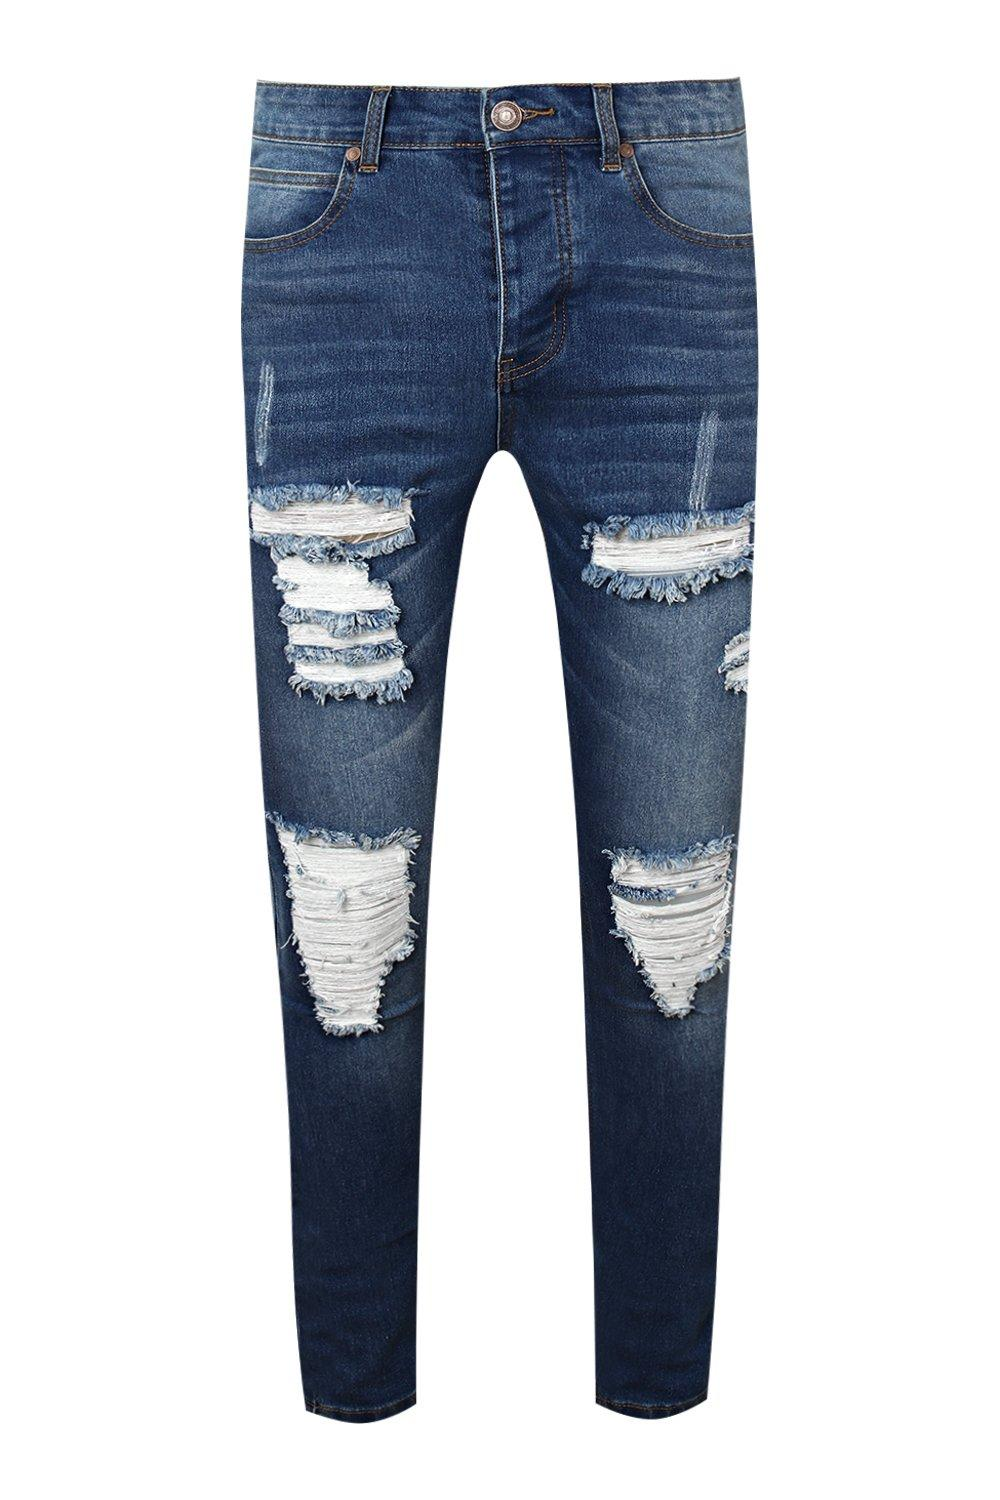 With Jeans Skinny mid All blue Over Rips Super 4qEAdF5wq